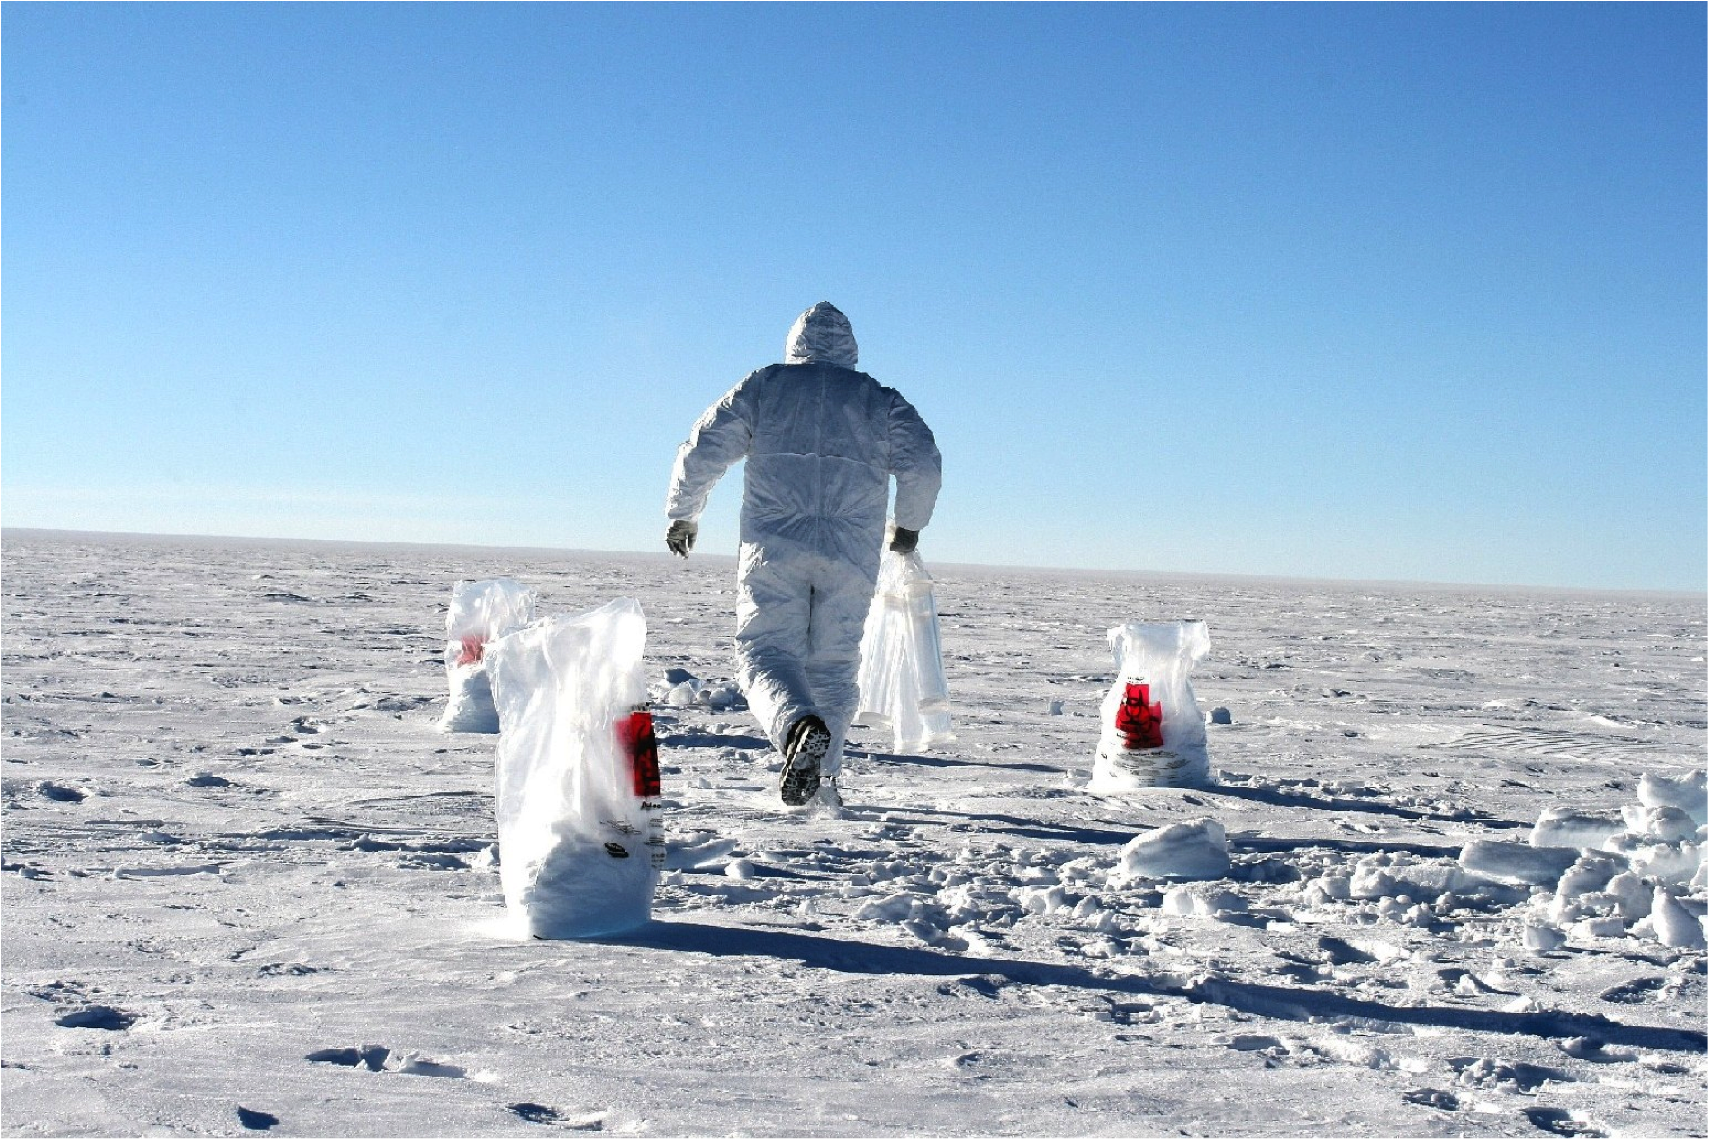 collecting-snow-at-vostok